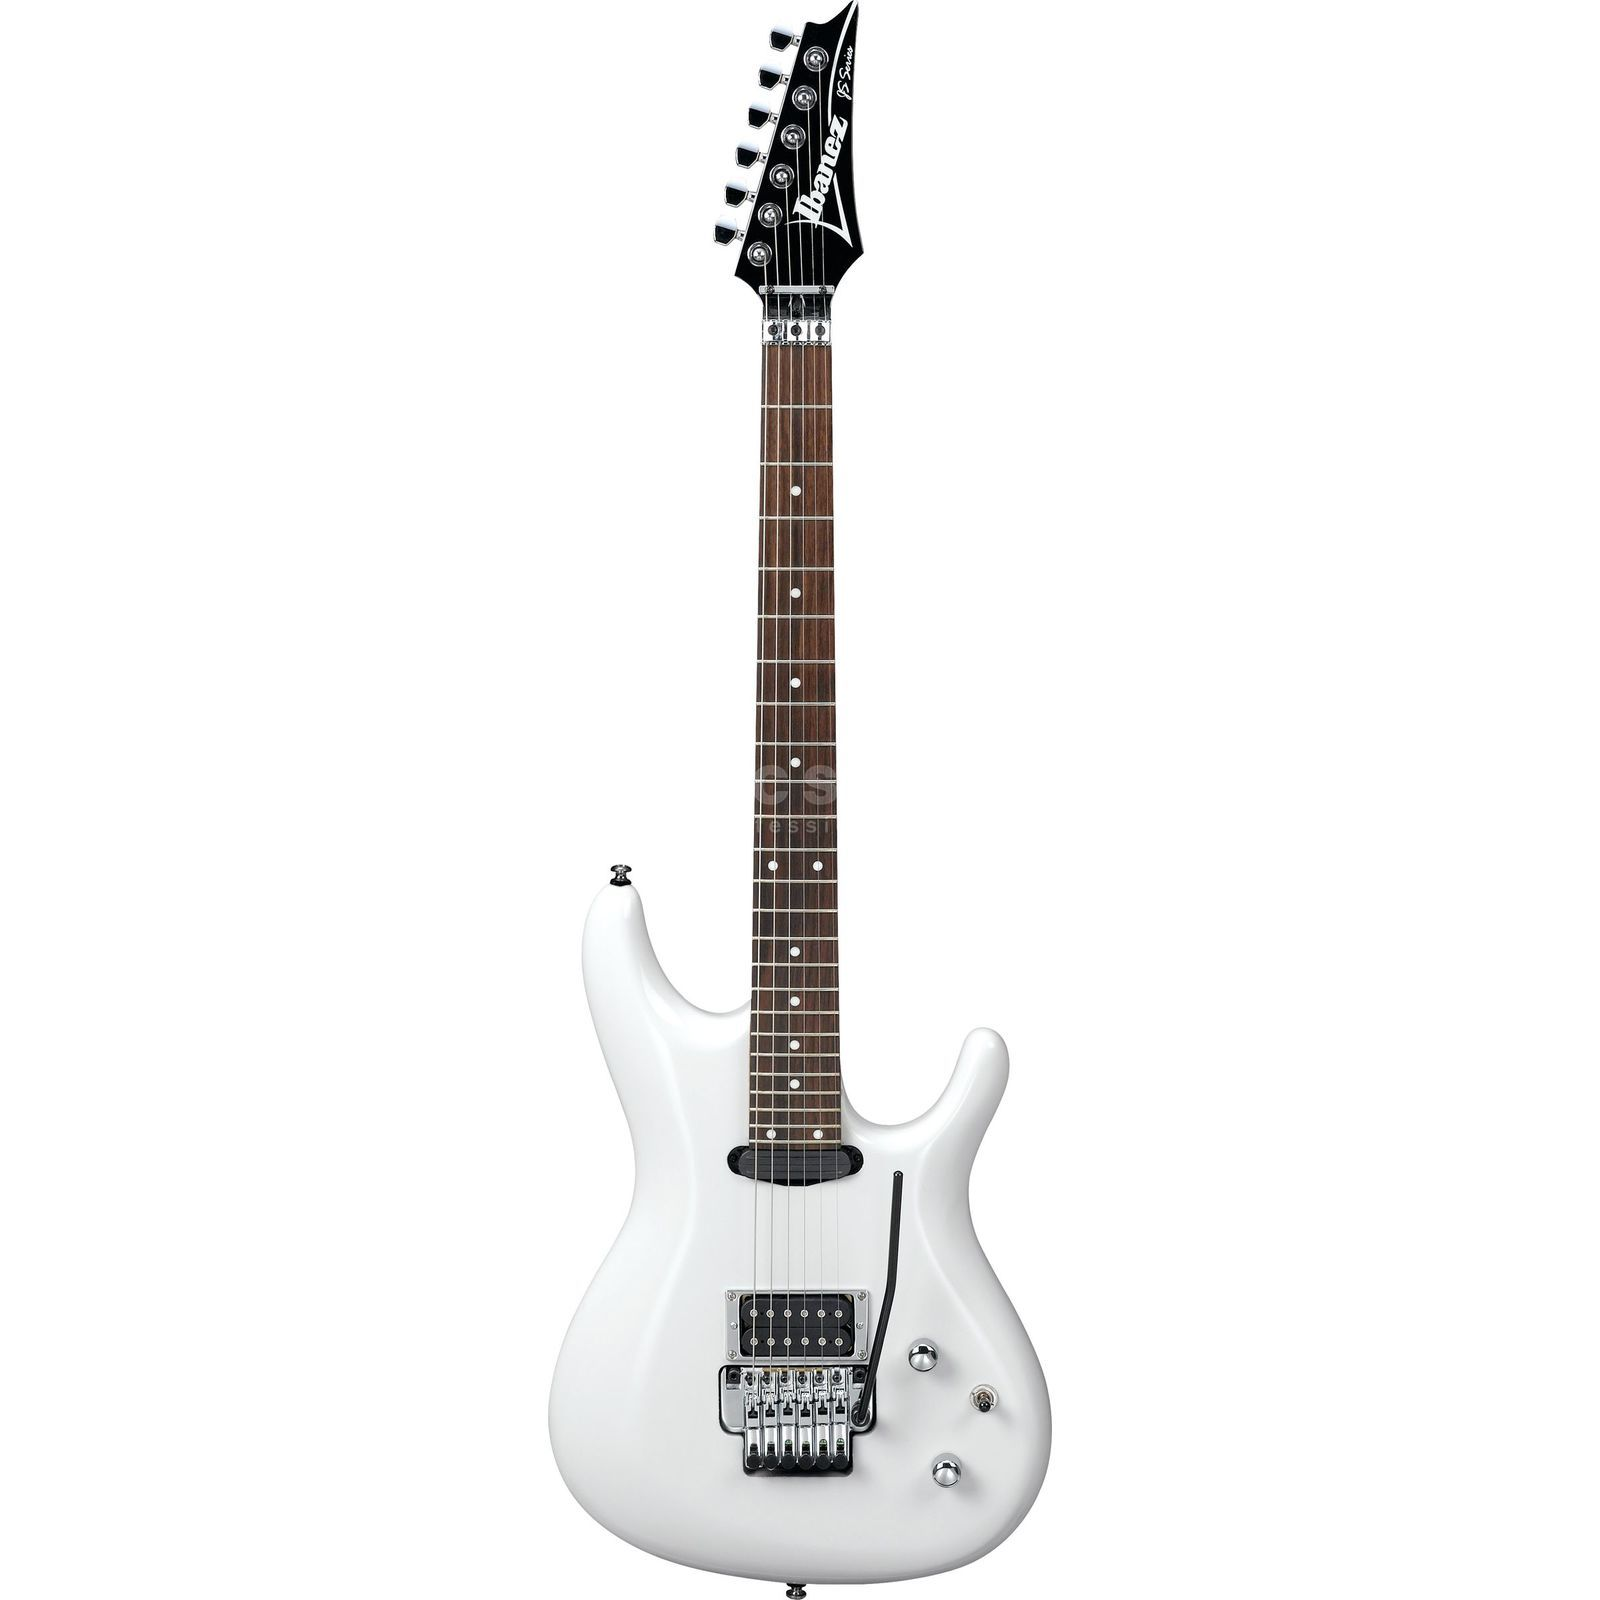 Ibanez JS140-WH White Product Image